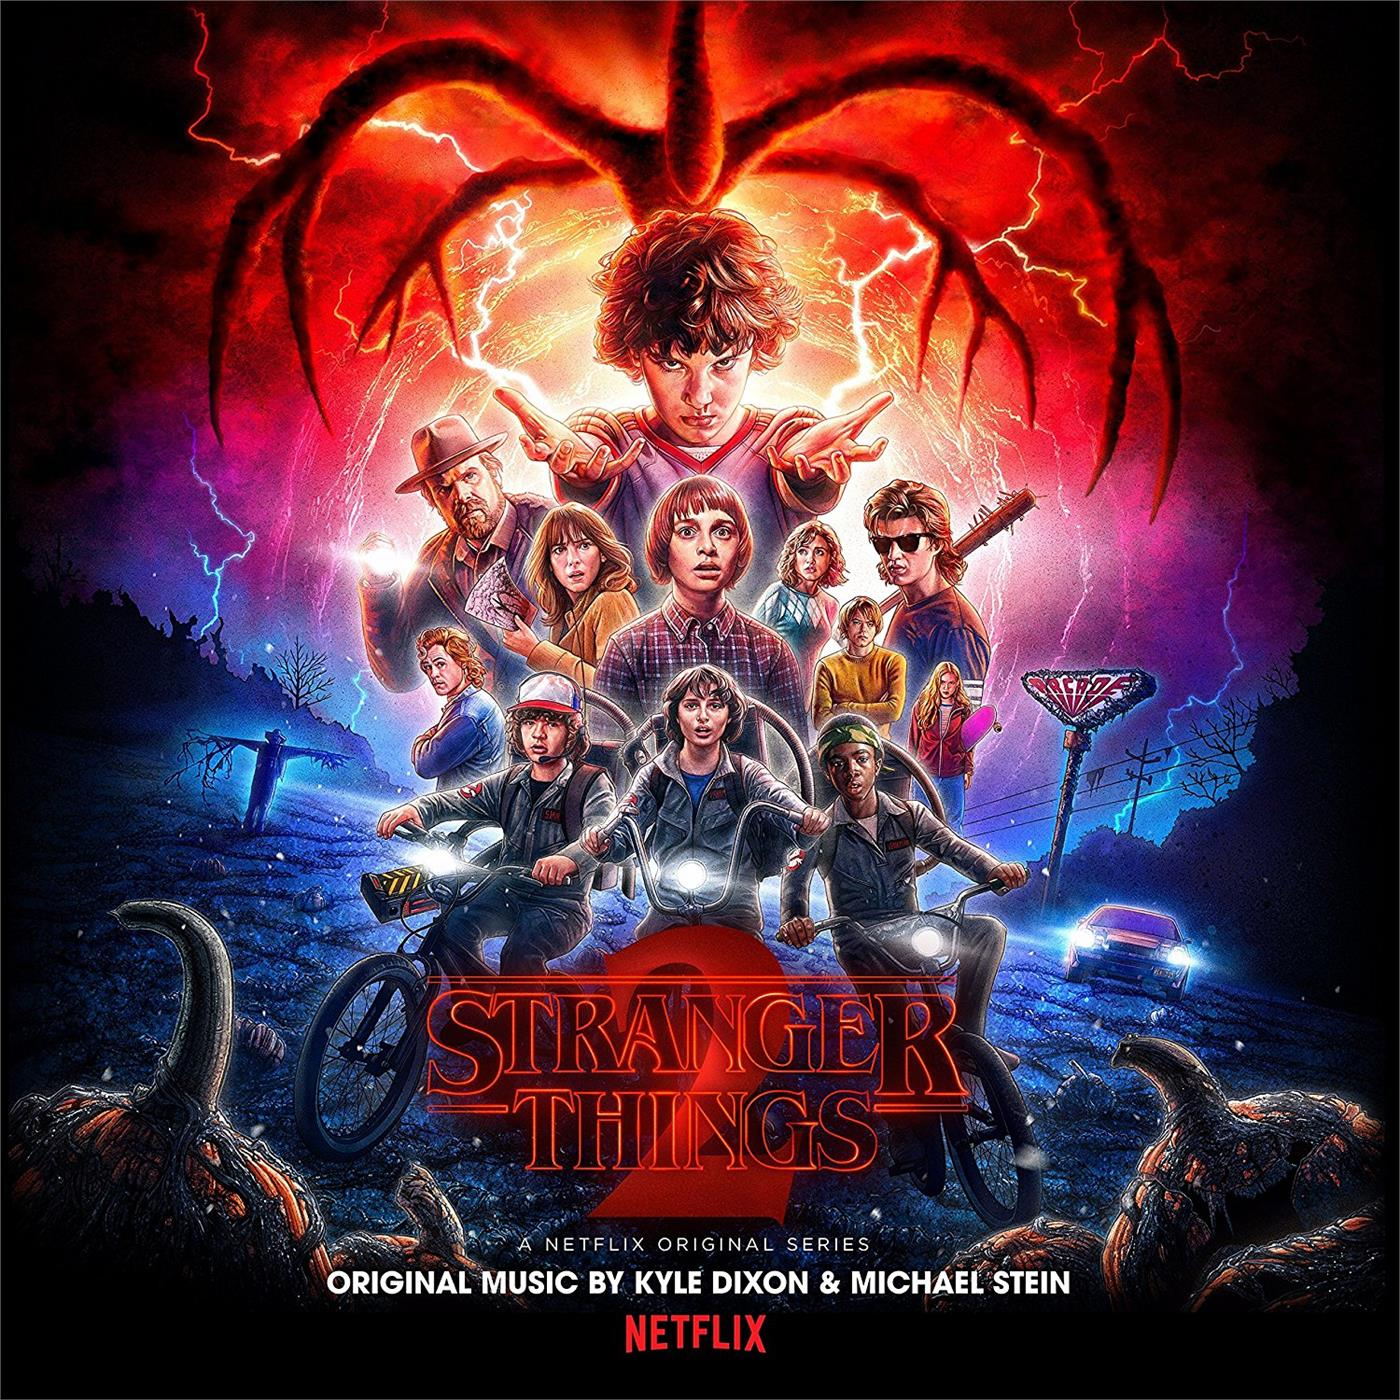 LSINV194LPCOL Invada  Kyle Dixon / Michael Stein / Soundtrack Stranger Things 2 (2LP)